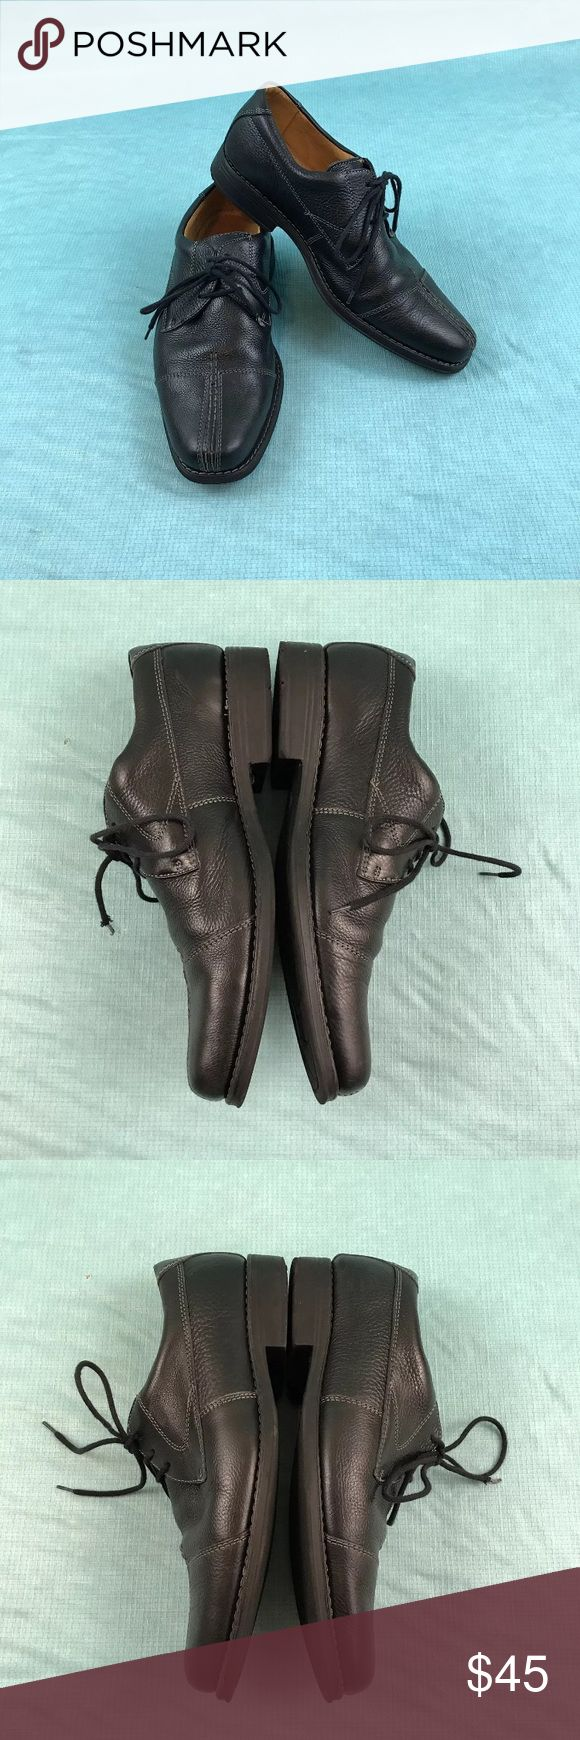 Sandro moscoloni black leather split toe shoe 9.5 One lace tip is frayed some markings on shoes. Overall good condition. Please see pics Sandro Moscoloni Shoes Oxfords & Derbys